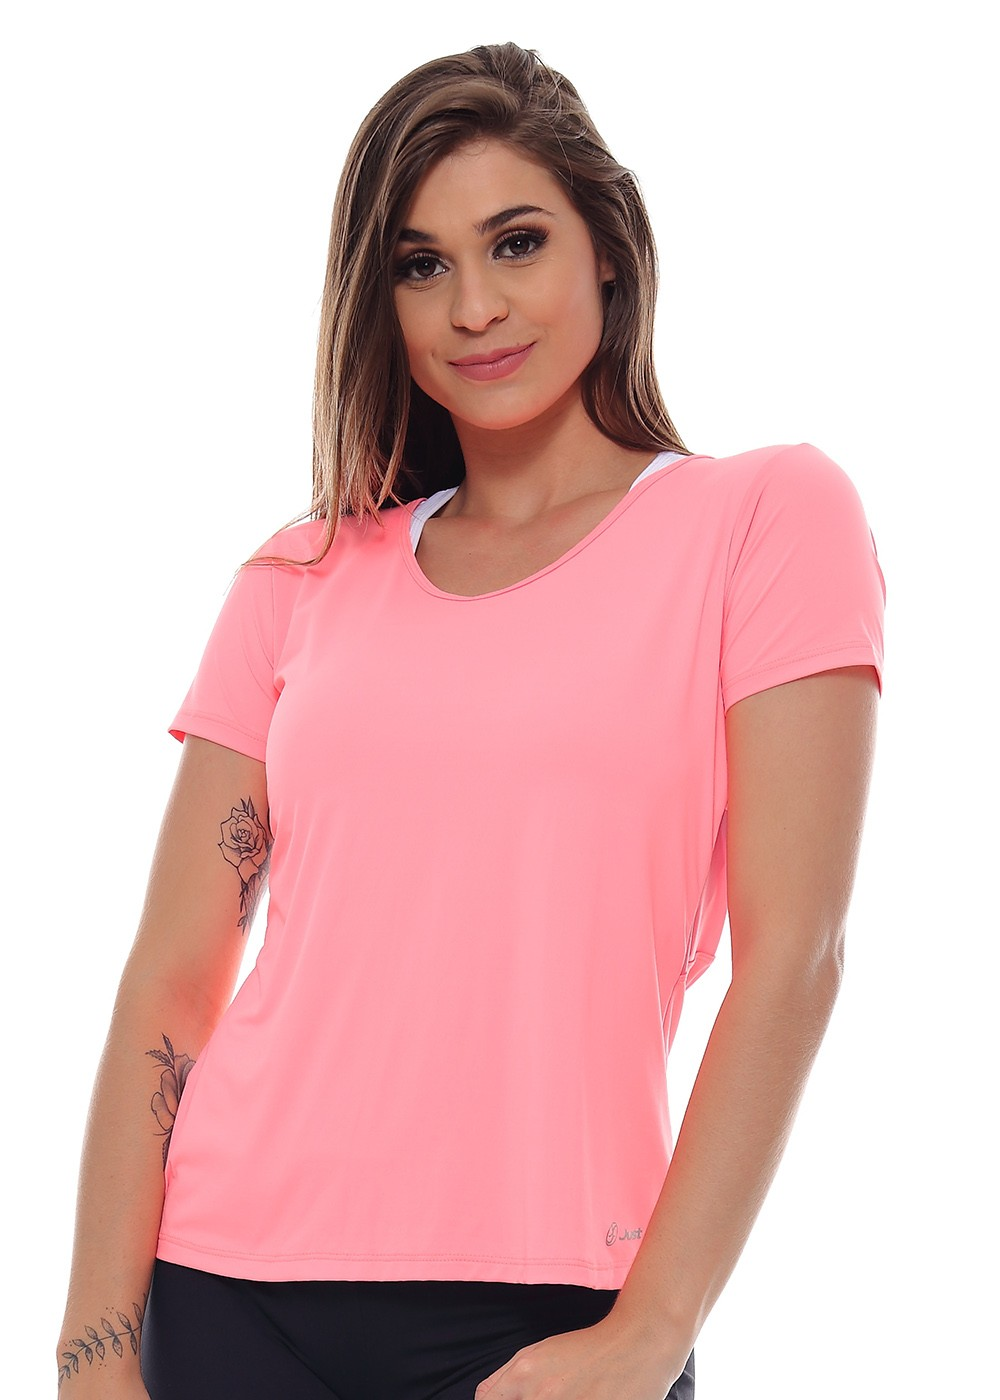 T-SHIRT ALWAYS JUST FIT - CORAL